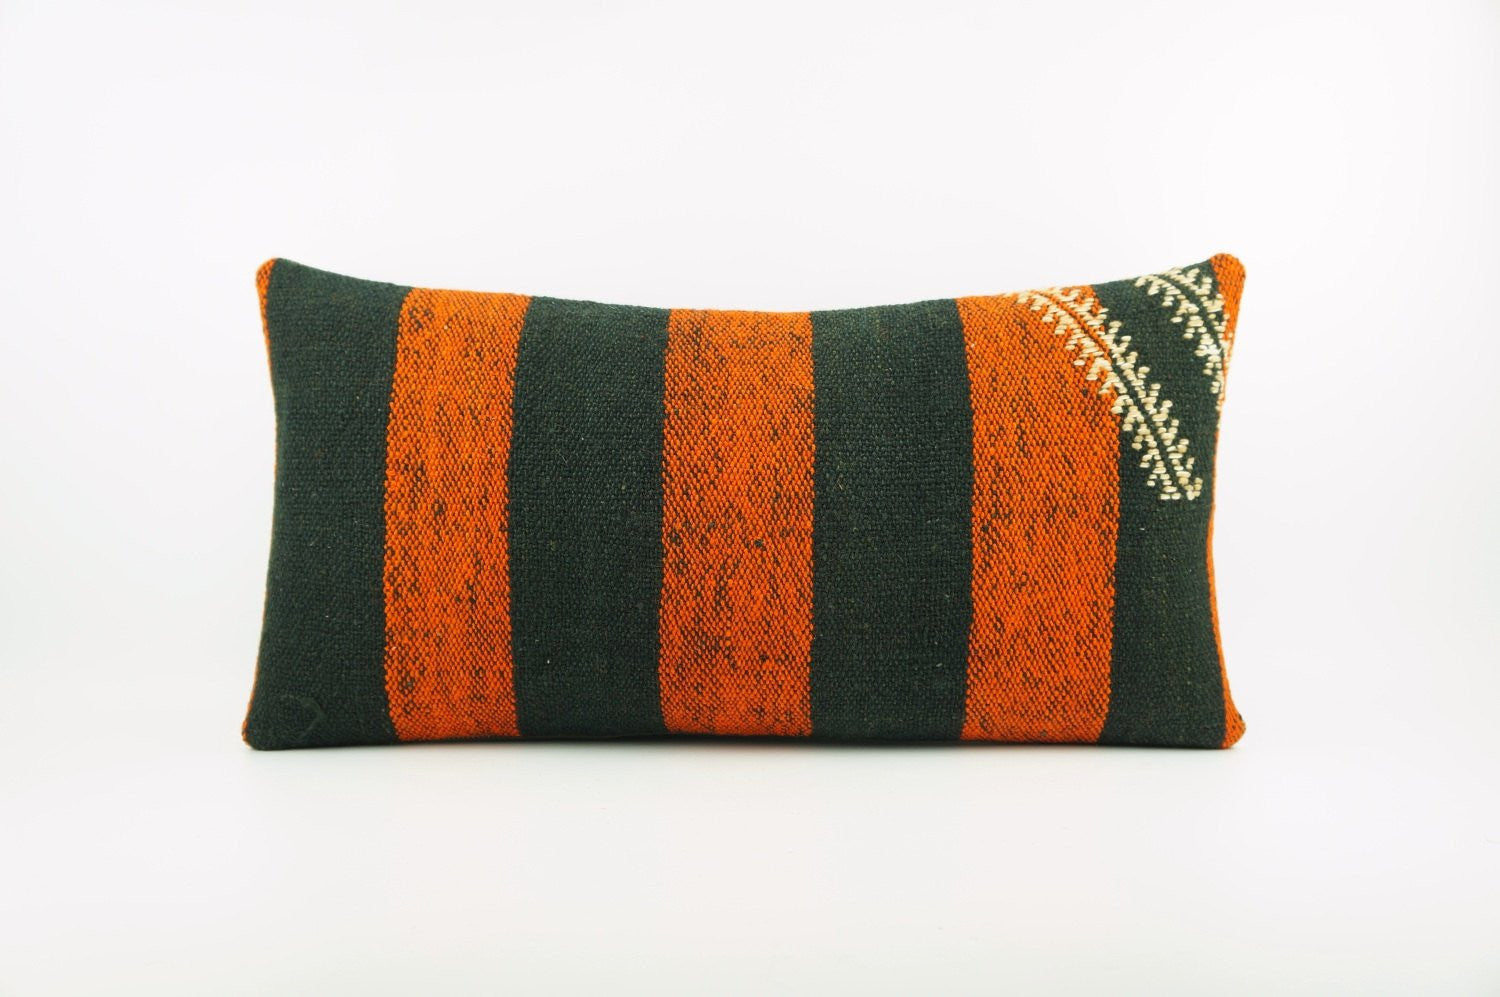 12x24 Ethnic decorative pillow cover , Bohemian pillow case, Modern home decor Striped Orange Black handwoven pillow ,1865 - kilimpillowstore  - 1